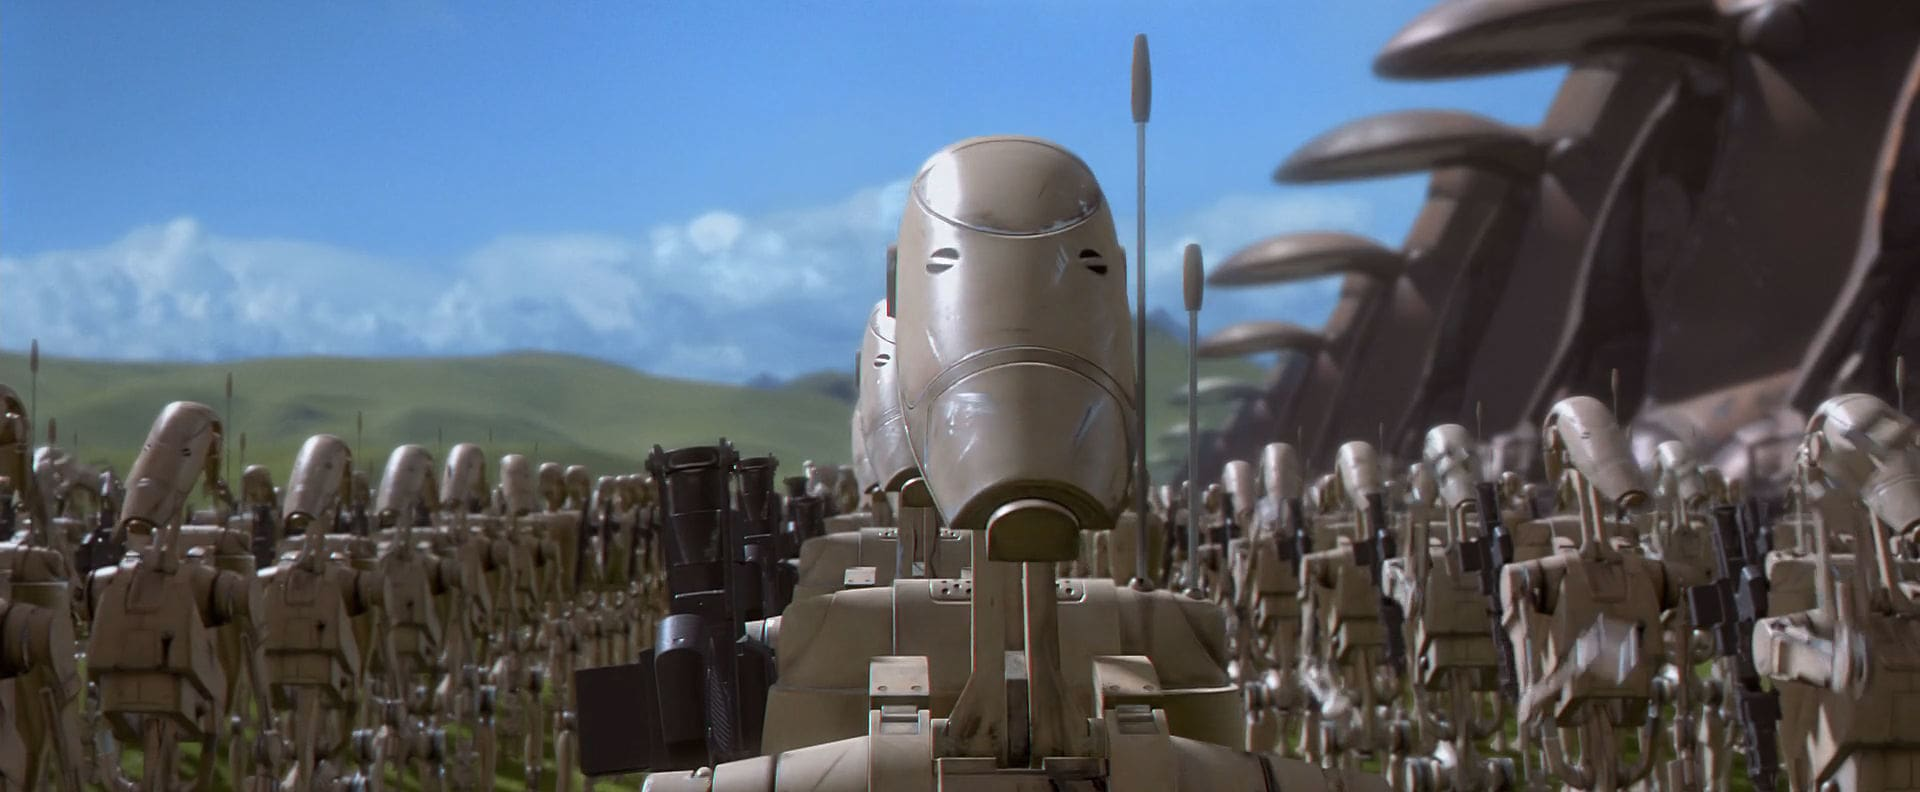 Activate the Droids